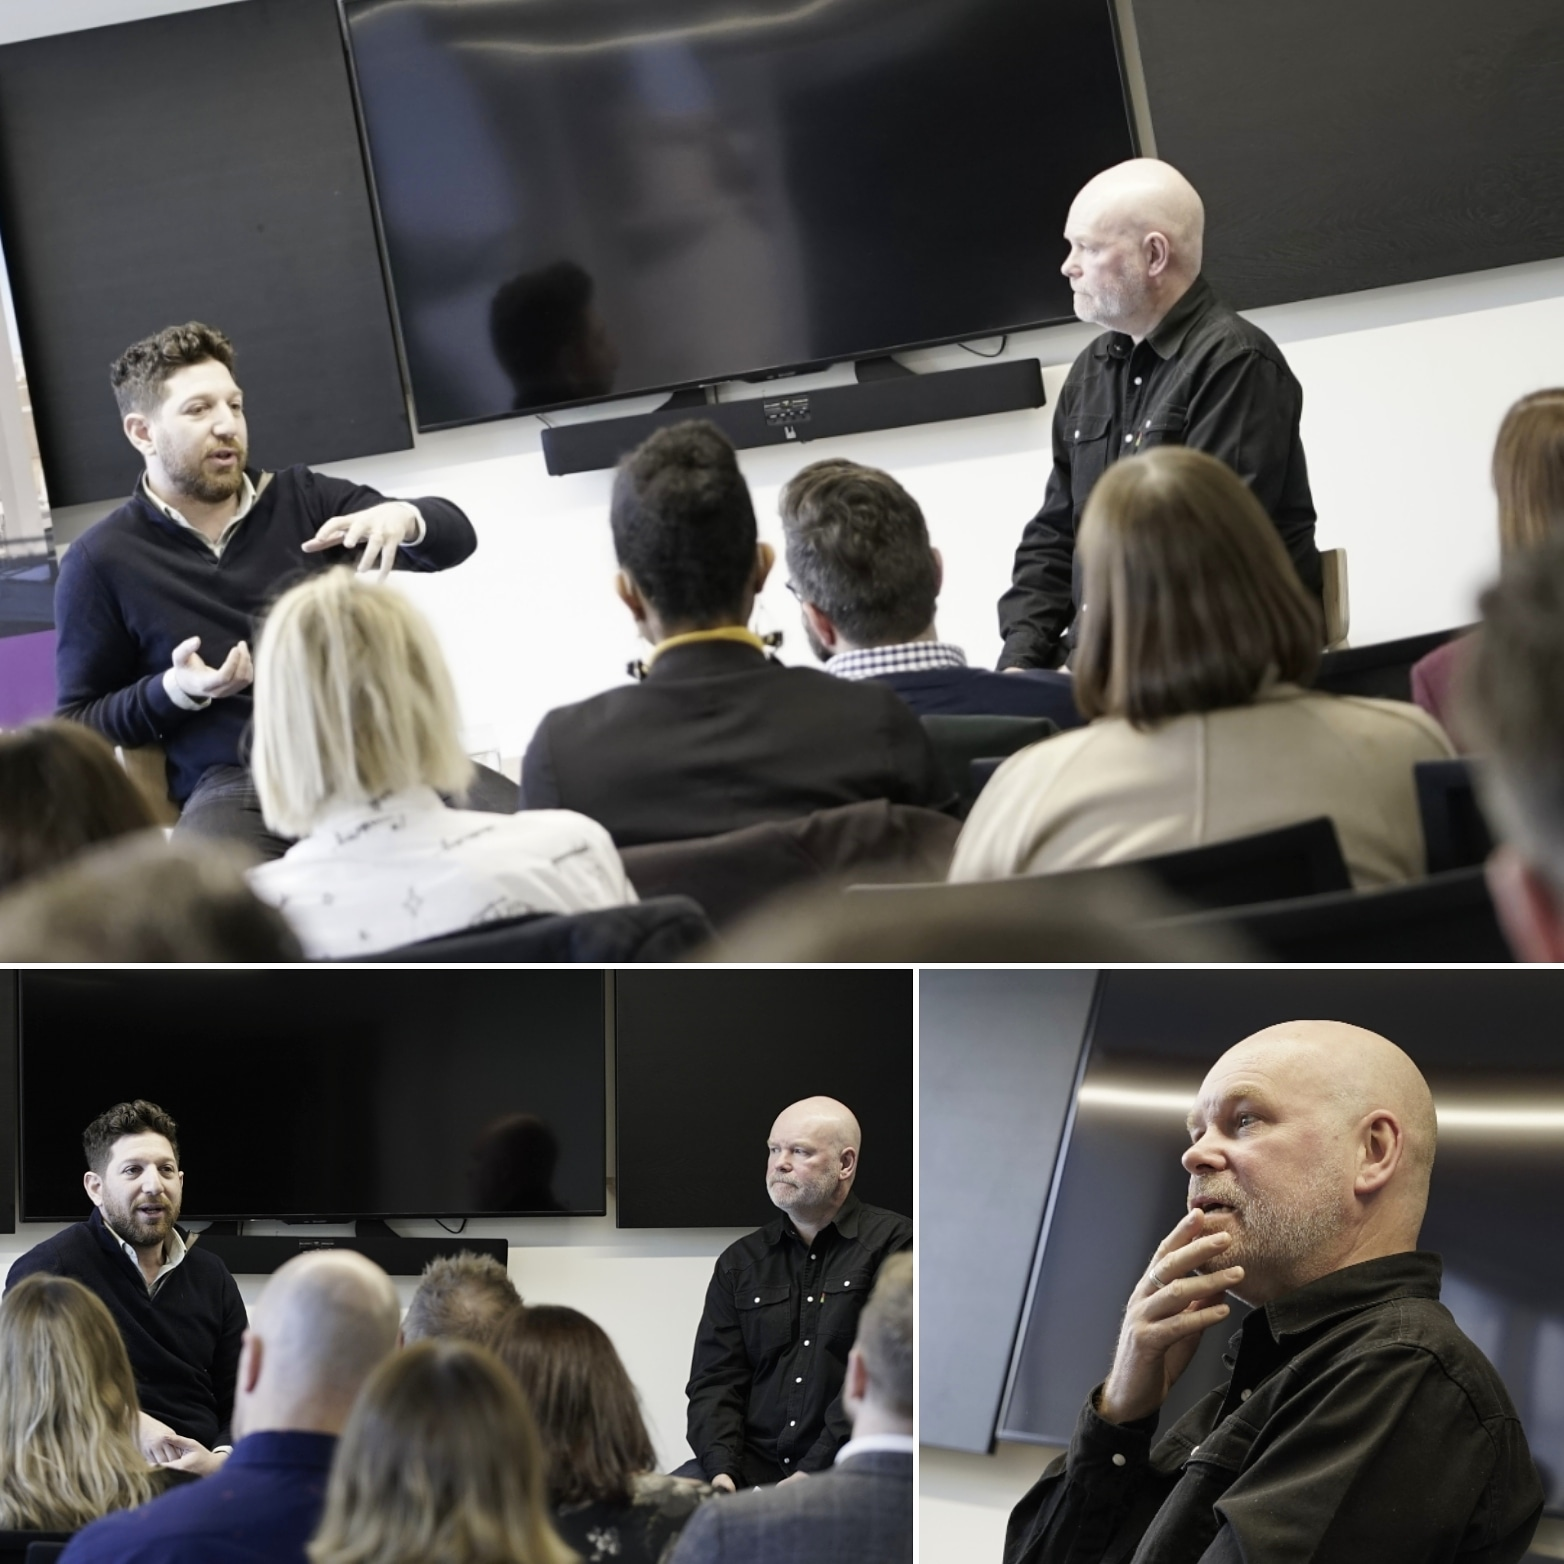 Agency New Business Q&A session with Mark Kelly